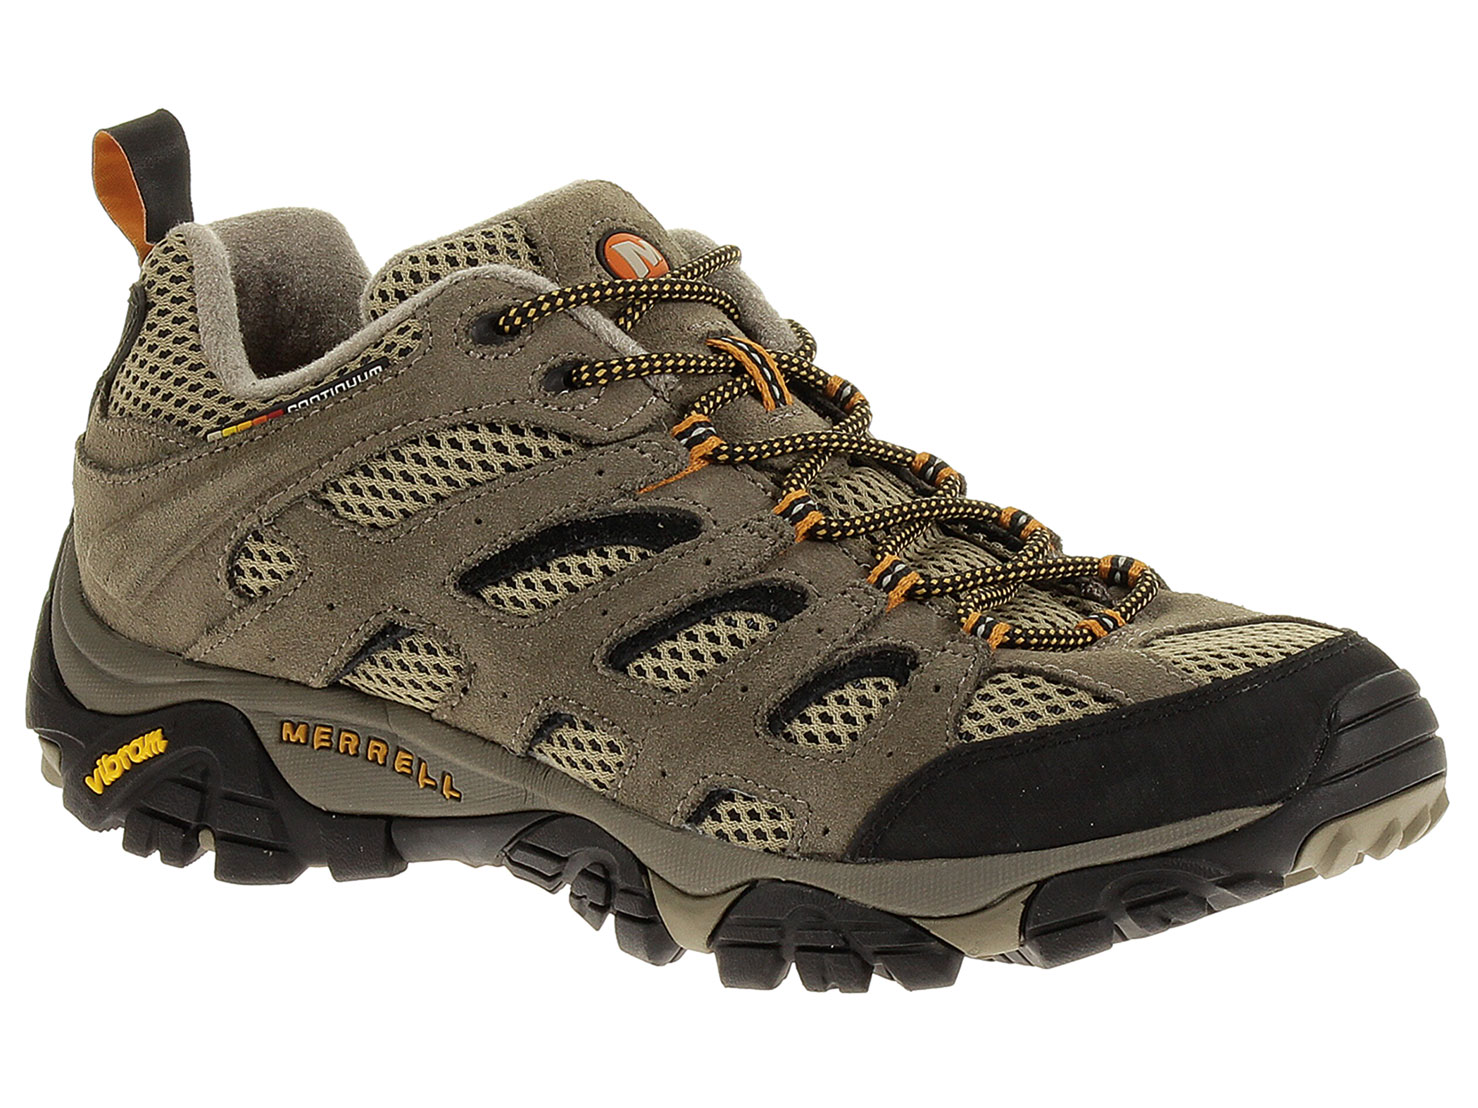 Merrell Men's Moab Ventilator Hiking Shoes - Wide Width - Walnut - 9W